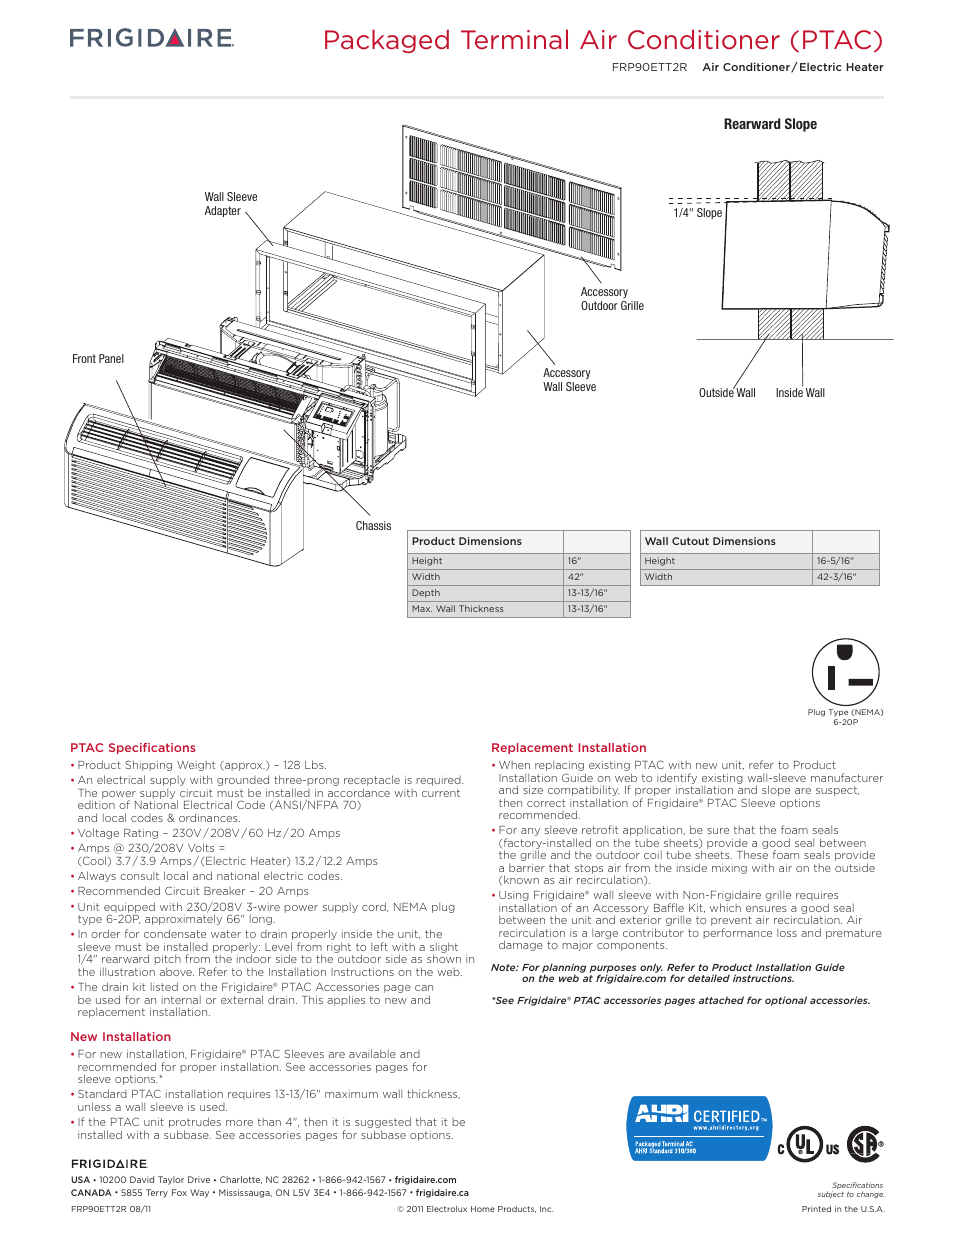 Packaged terminal air conditioner (ptac), Rearward slope | FRIGIDAIRE  FRP90ETT2R User Manual | Page 3 / 6